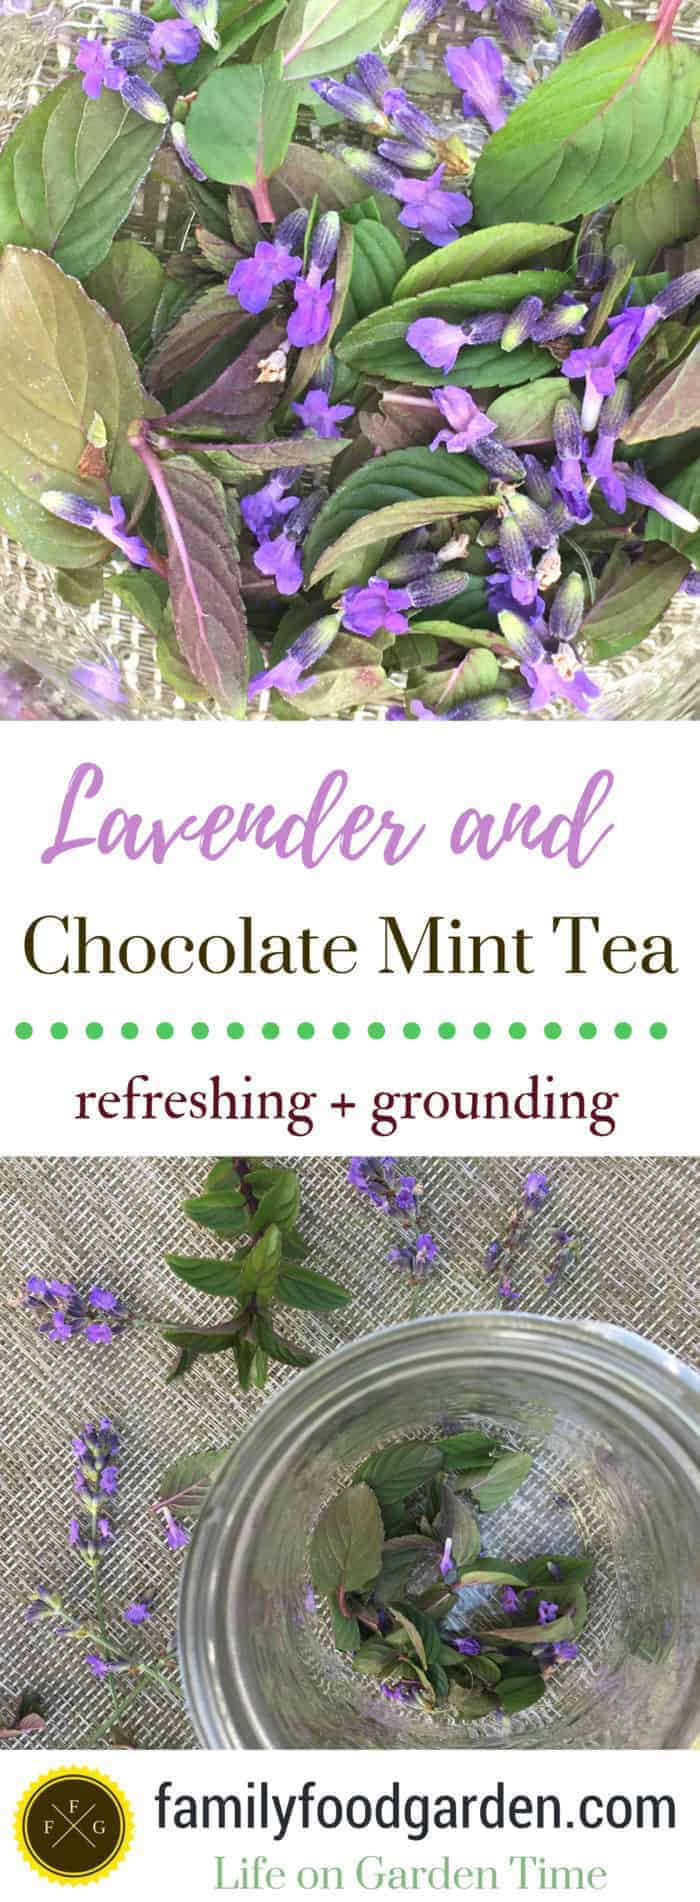 Lavender and chocolate mint tea